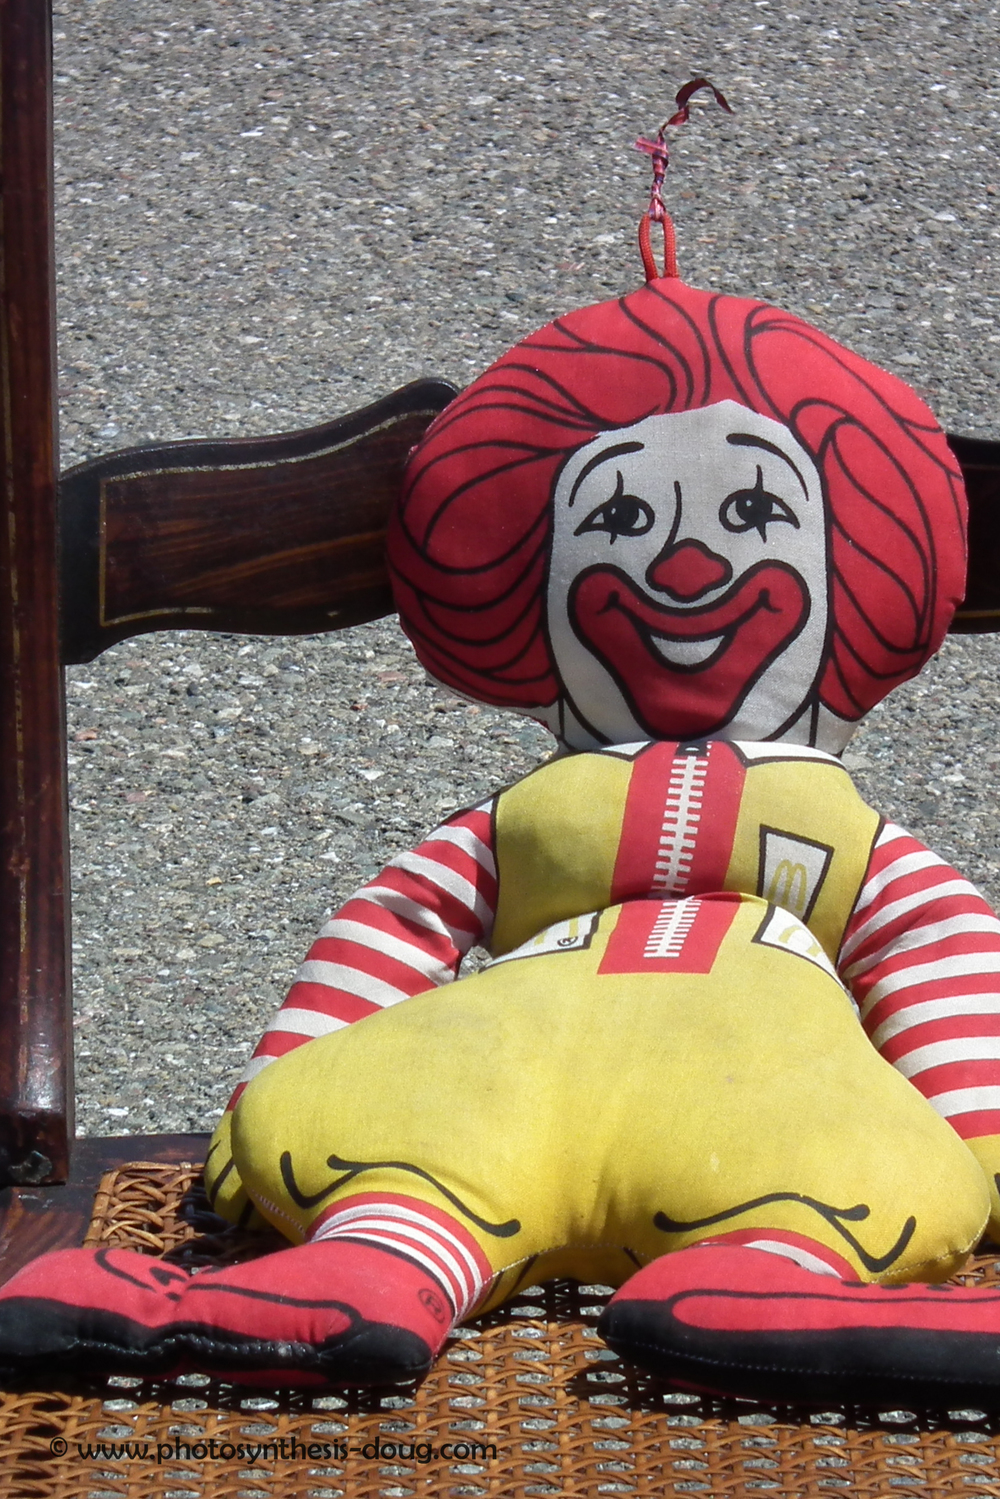 clown doll-8819.jpg